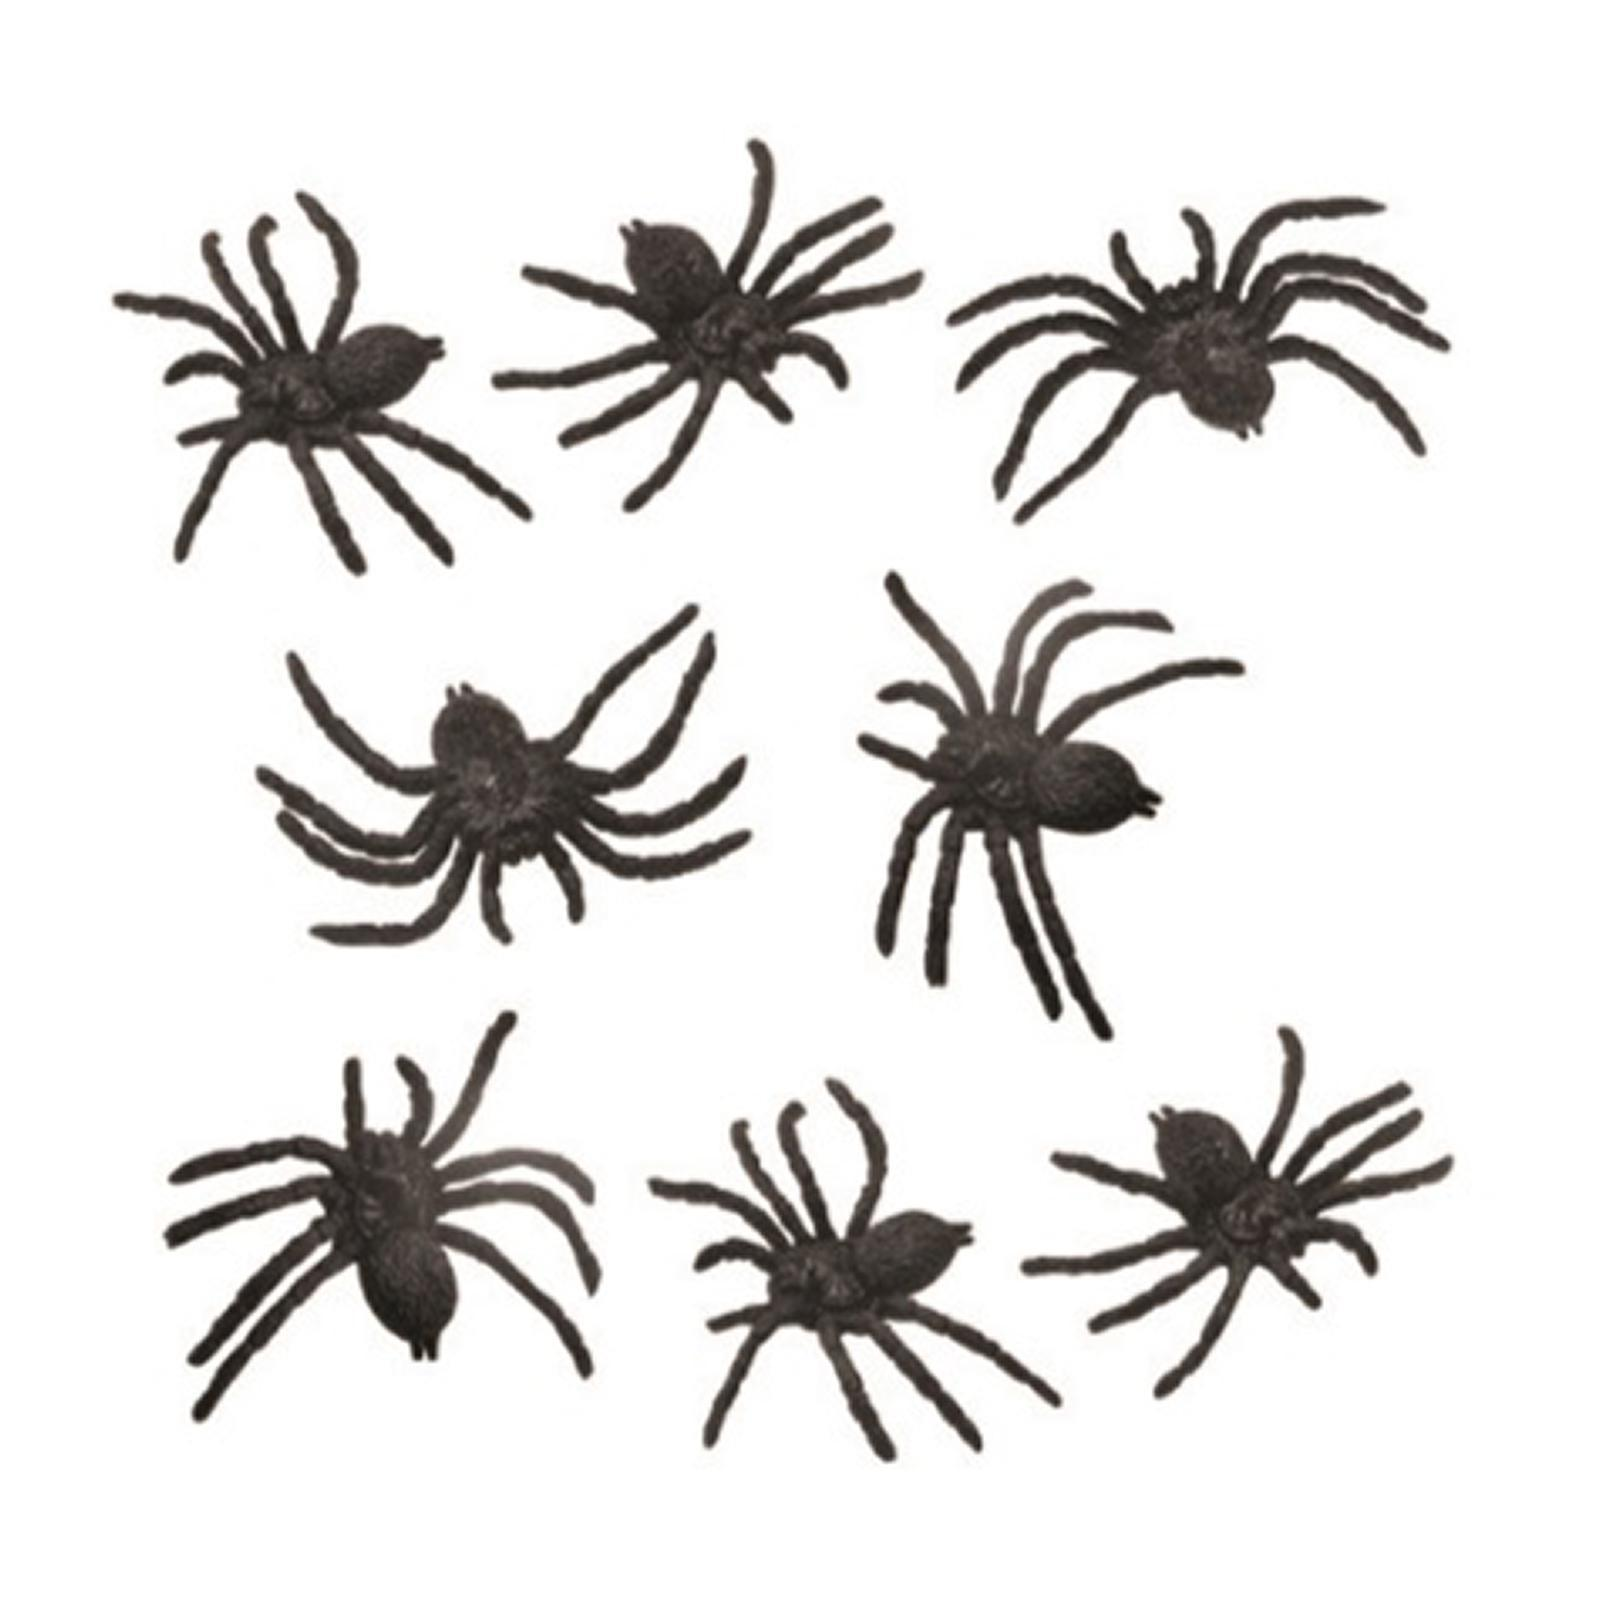 Artwrap Party Favors - Spiders